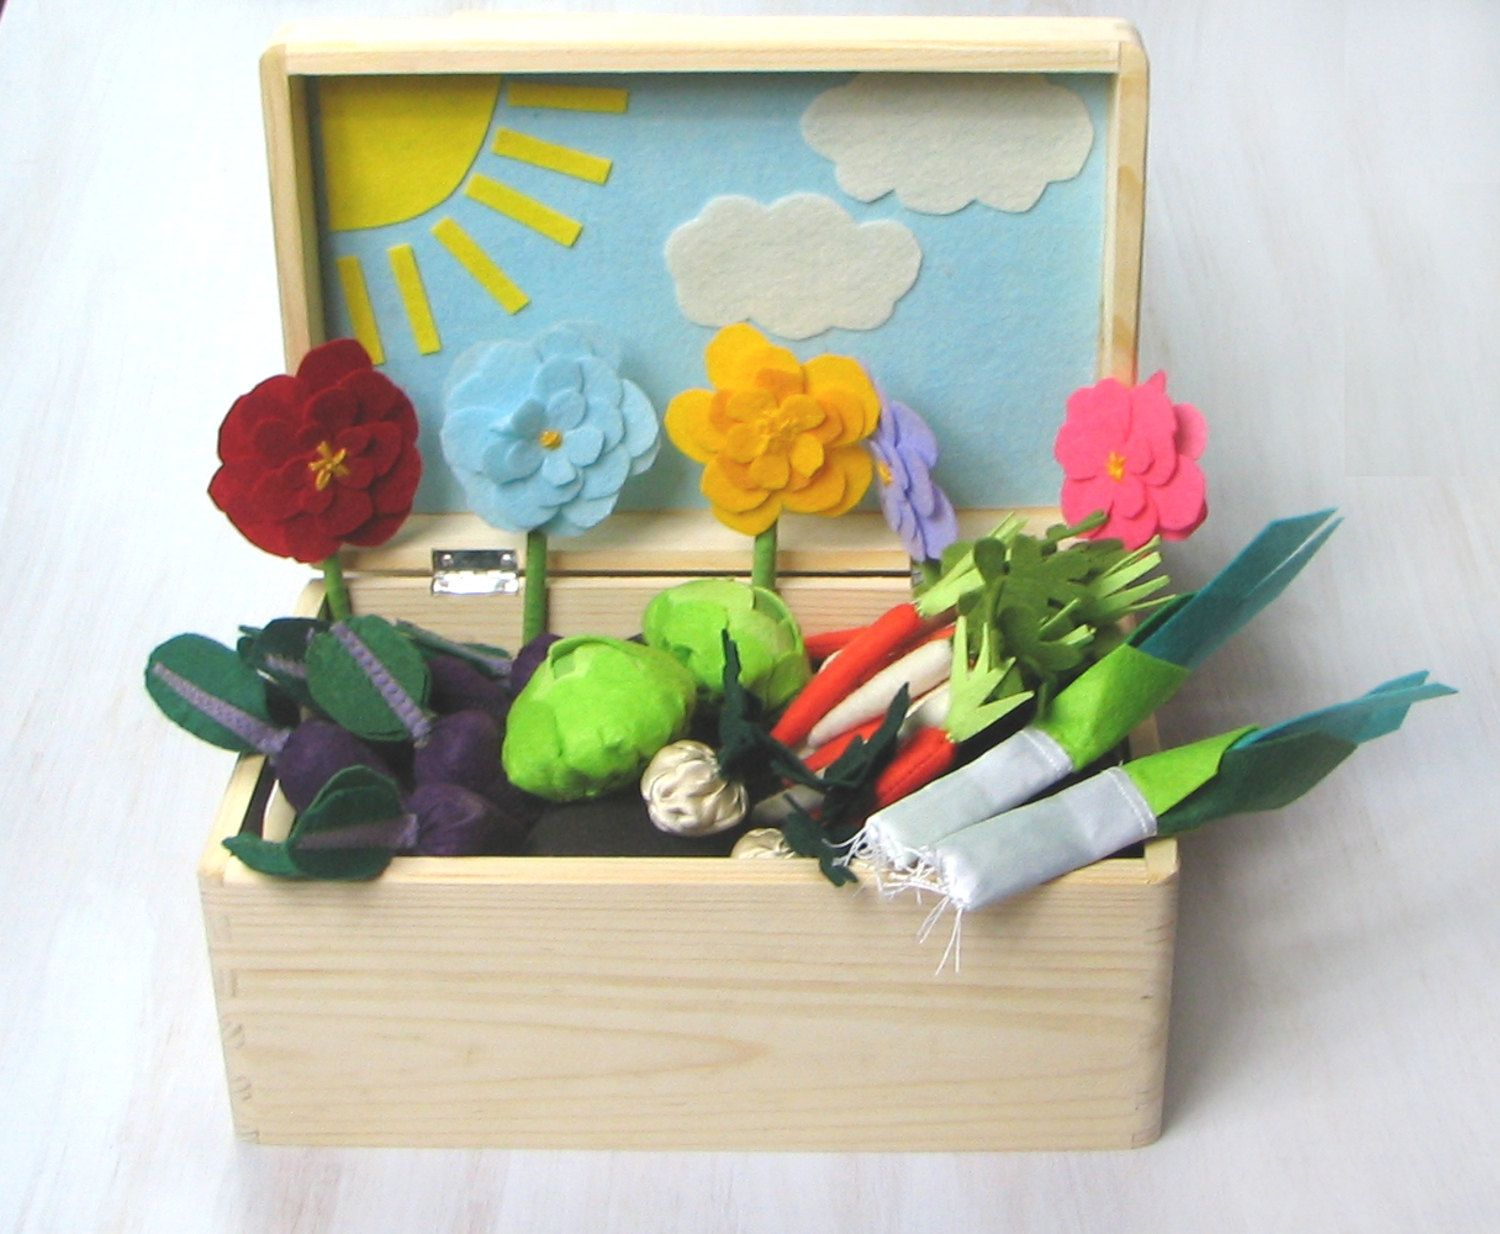 Sunny Felt Fabric Vegetable Garden Play Set, Toy MiniGarden, Pretend Food Veggies Big Set Box For Kids Little Gardener Vegetable Patch - pinned by pin4etsy.com